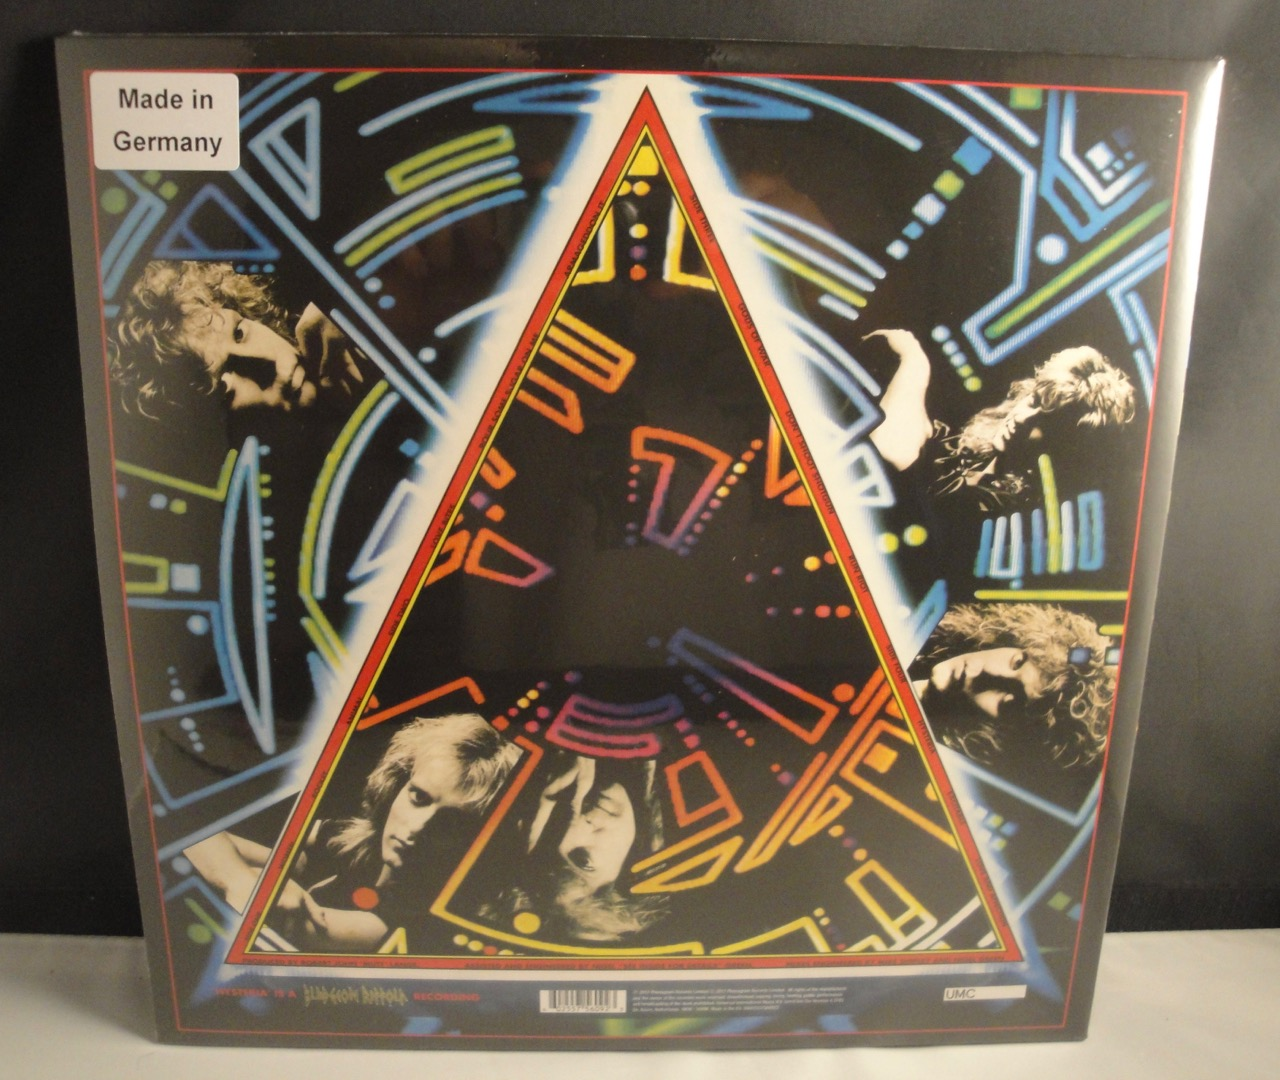 Def Leppard - Hysteria - 2XLP, 180 Gram with Poster, LP, 2017